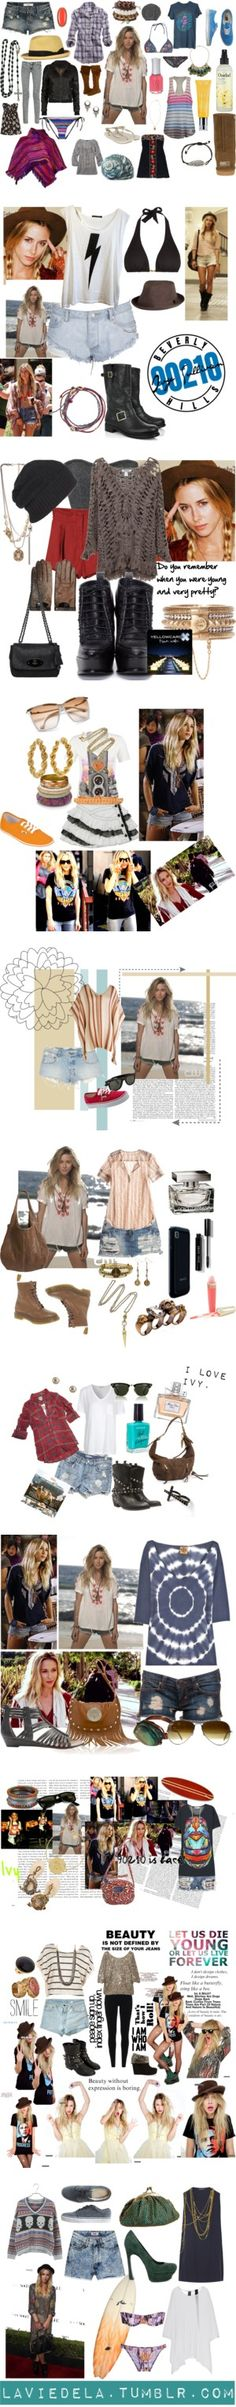 """""""Ivy Sullivan (90210)"""" by rosabette ❤ liked on Polyvore"""